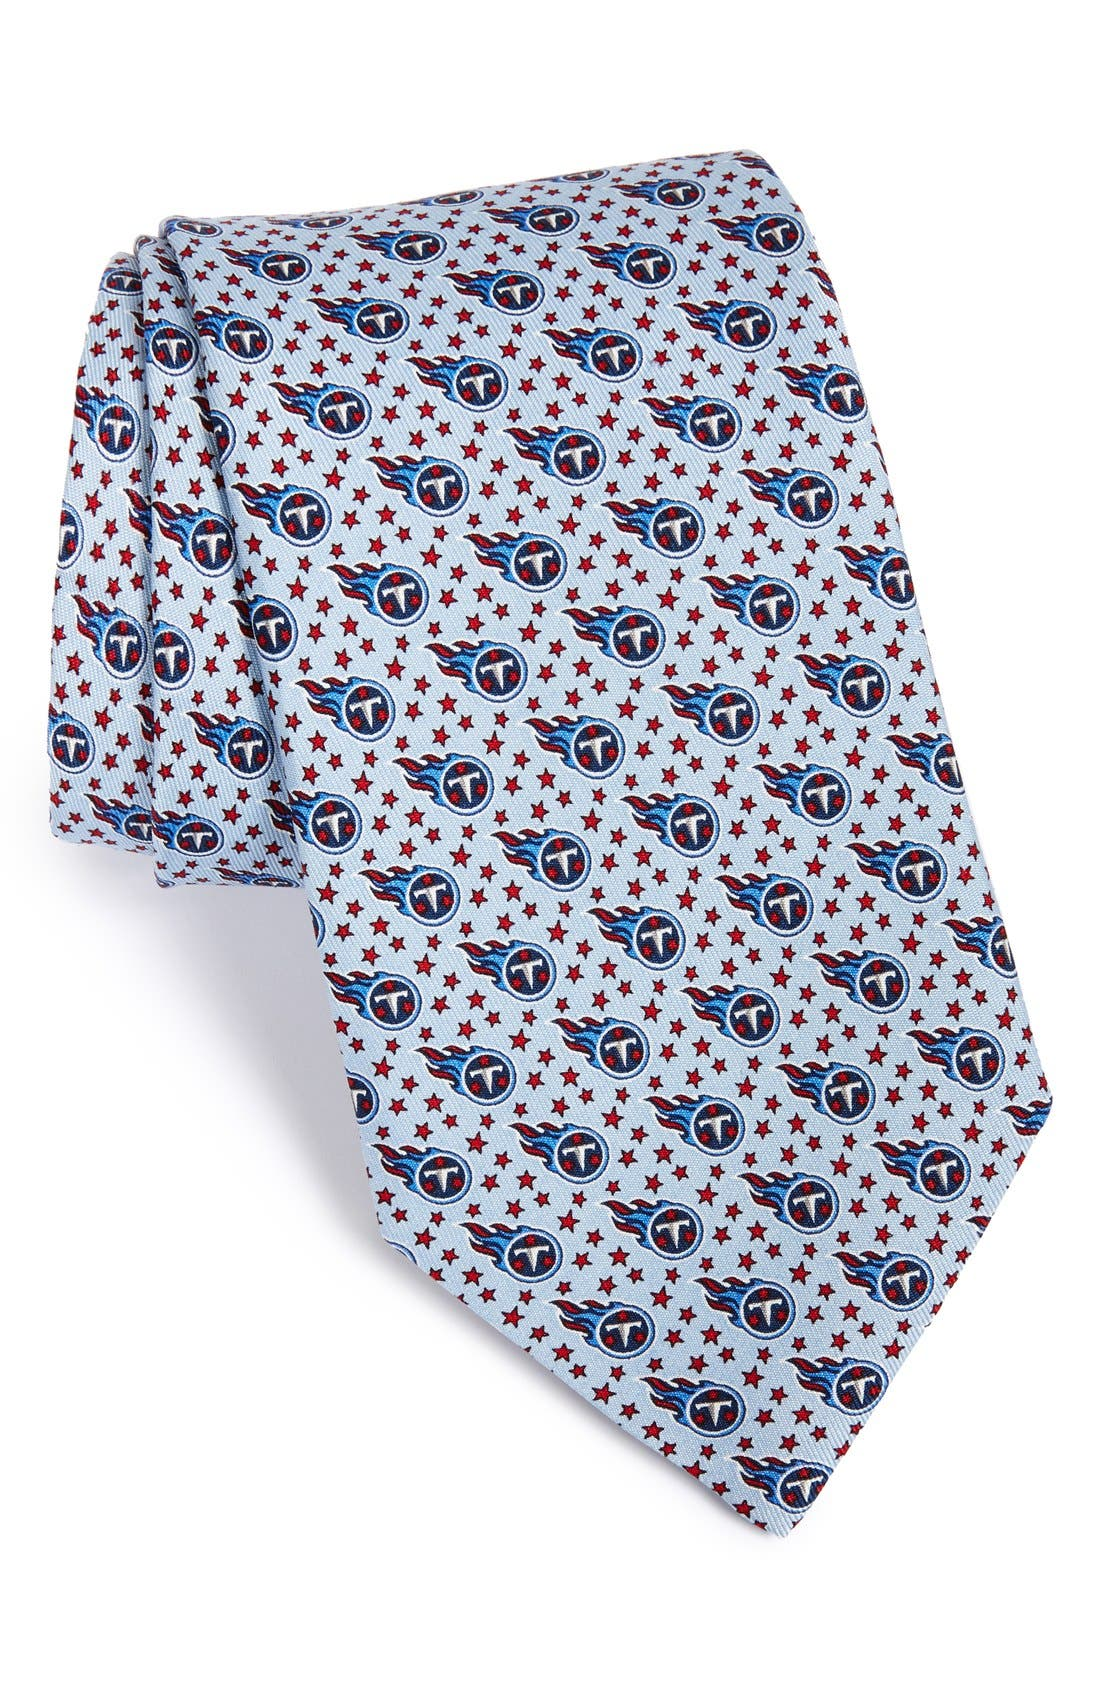 Tennessee Titans - NFL Woven Silk Tie,                         Main,                         color, BLUE SKY